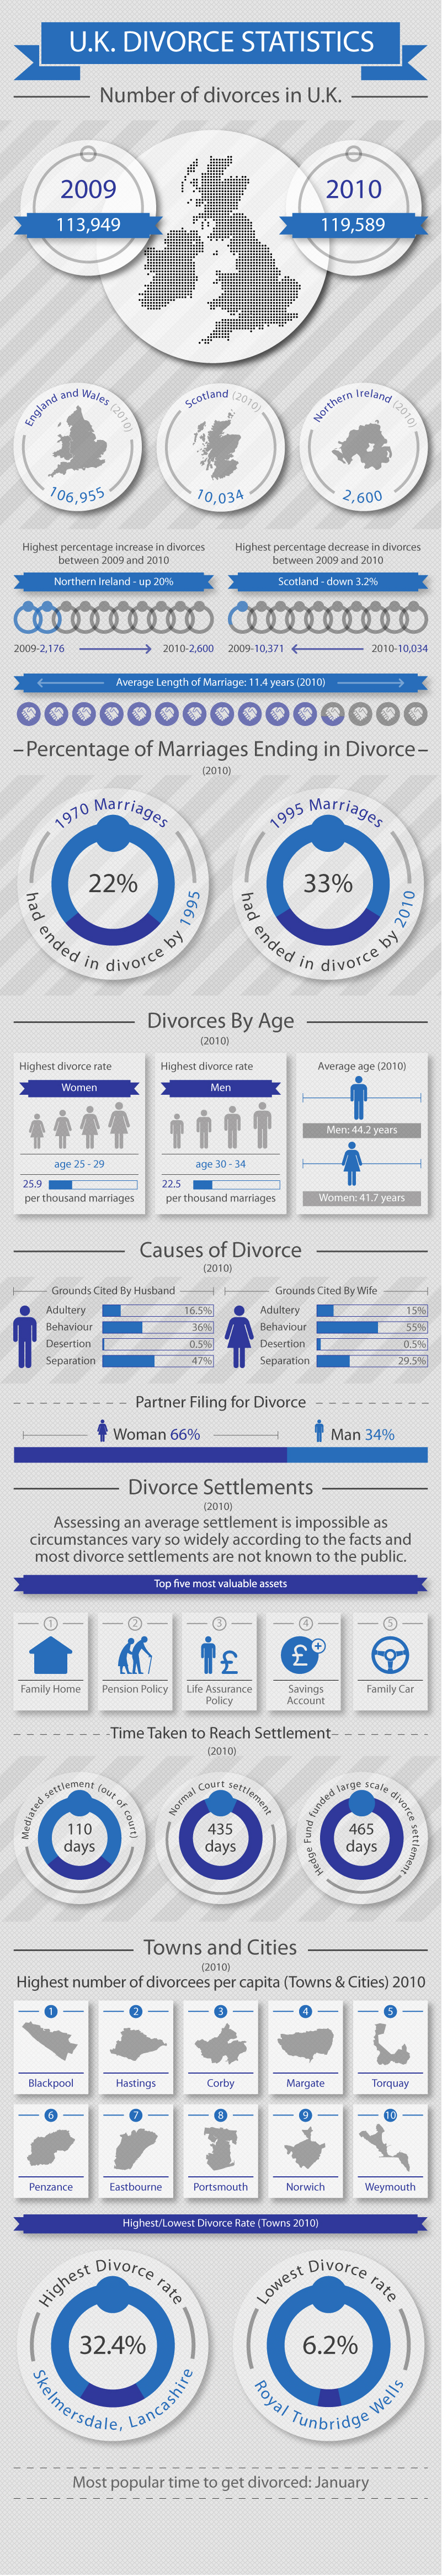 uk-divorce-statistics_5049cbda5661e